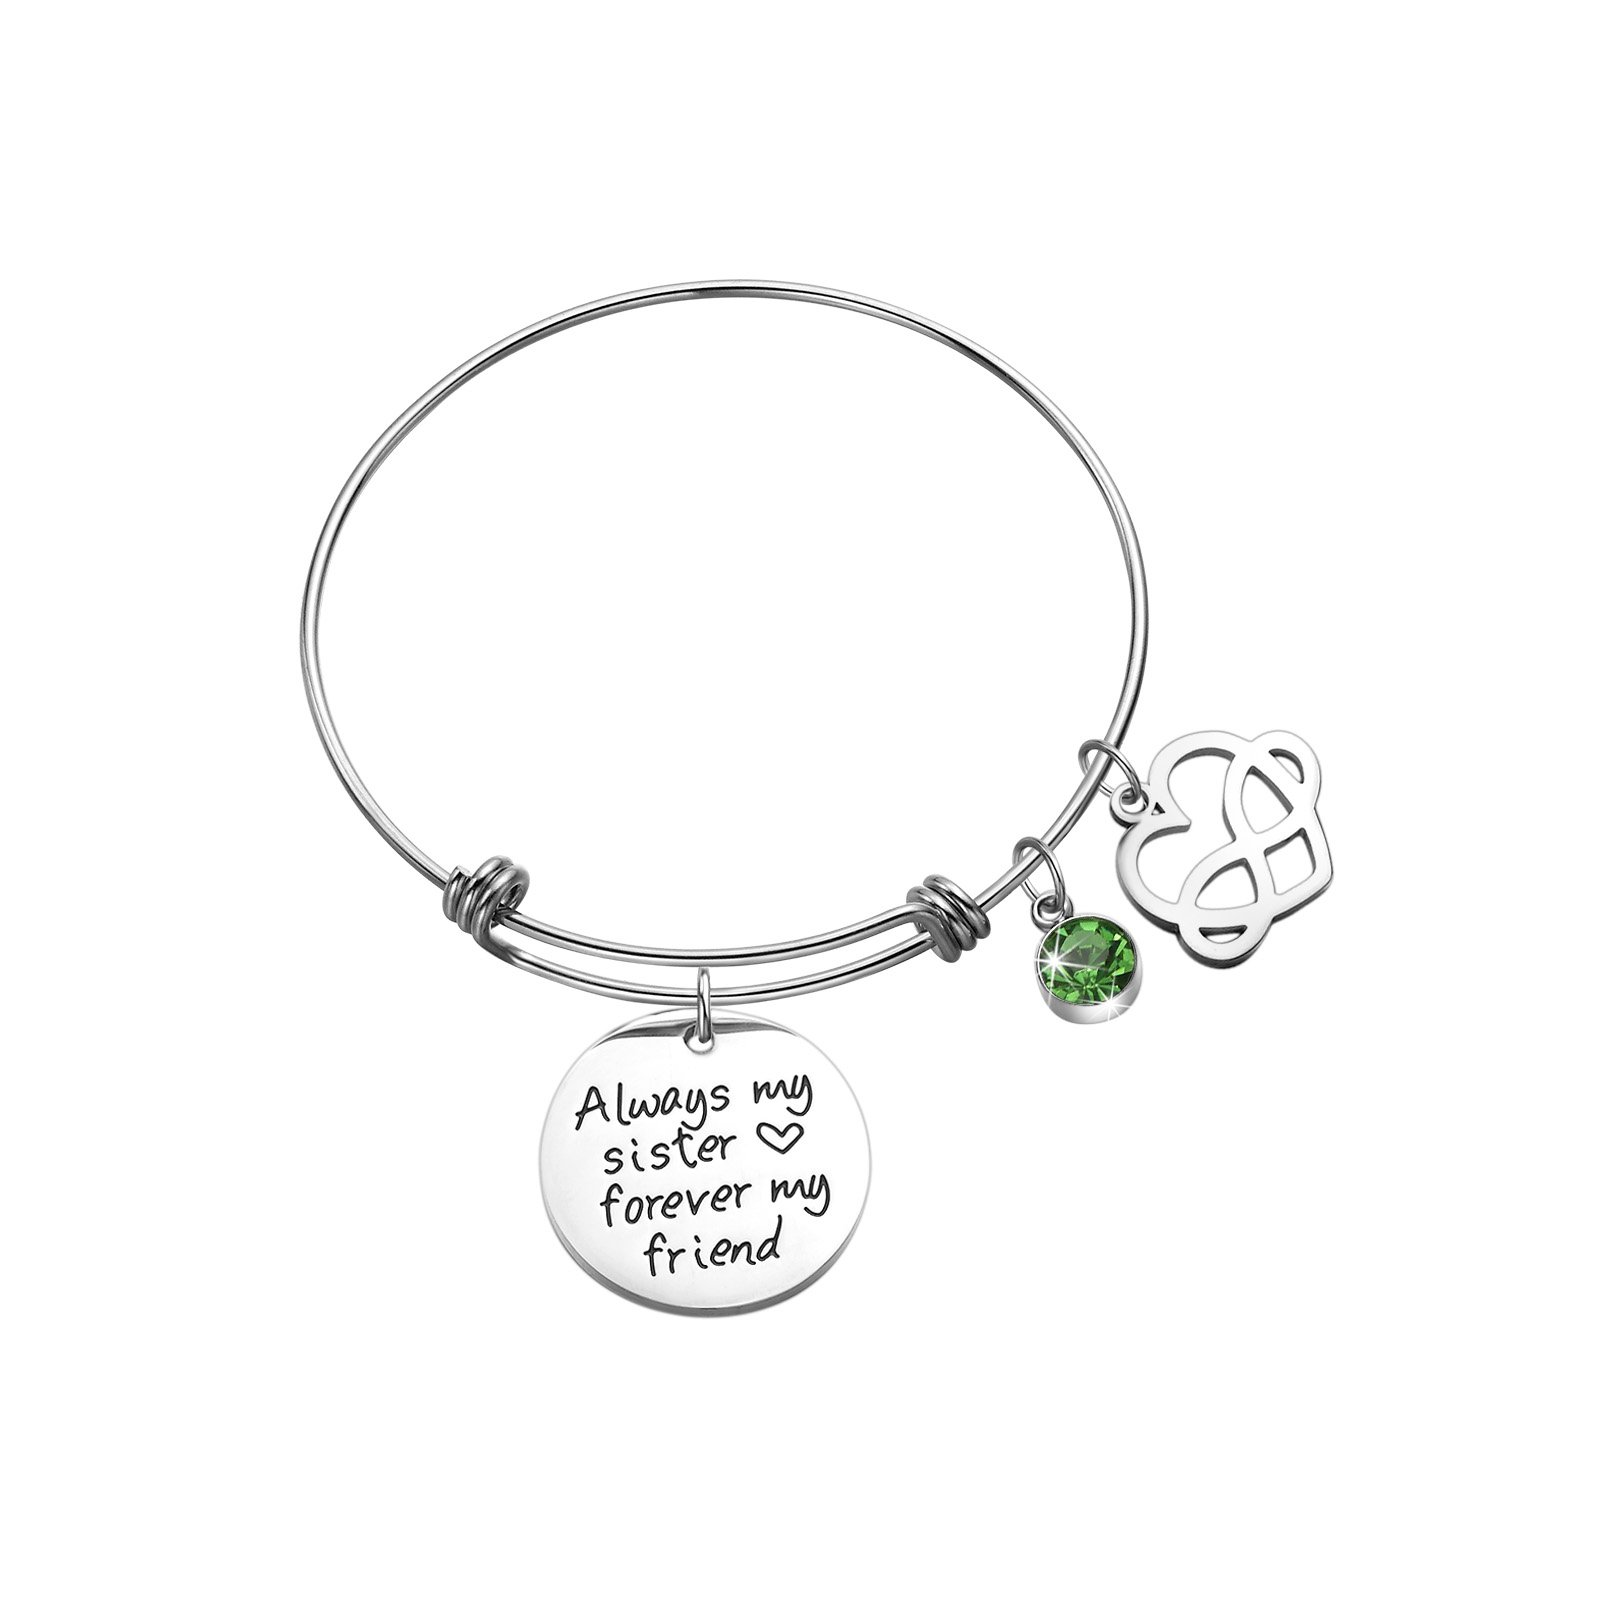 Sunflower Jewellery Birthstone Charm Bracelet Always My Sister Forever My Friends (August)